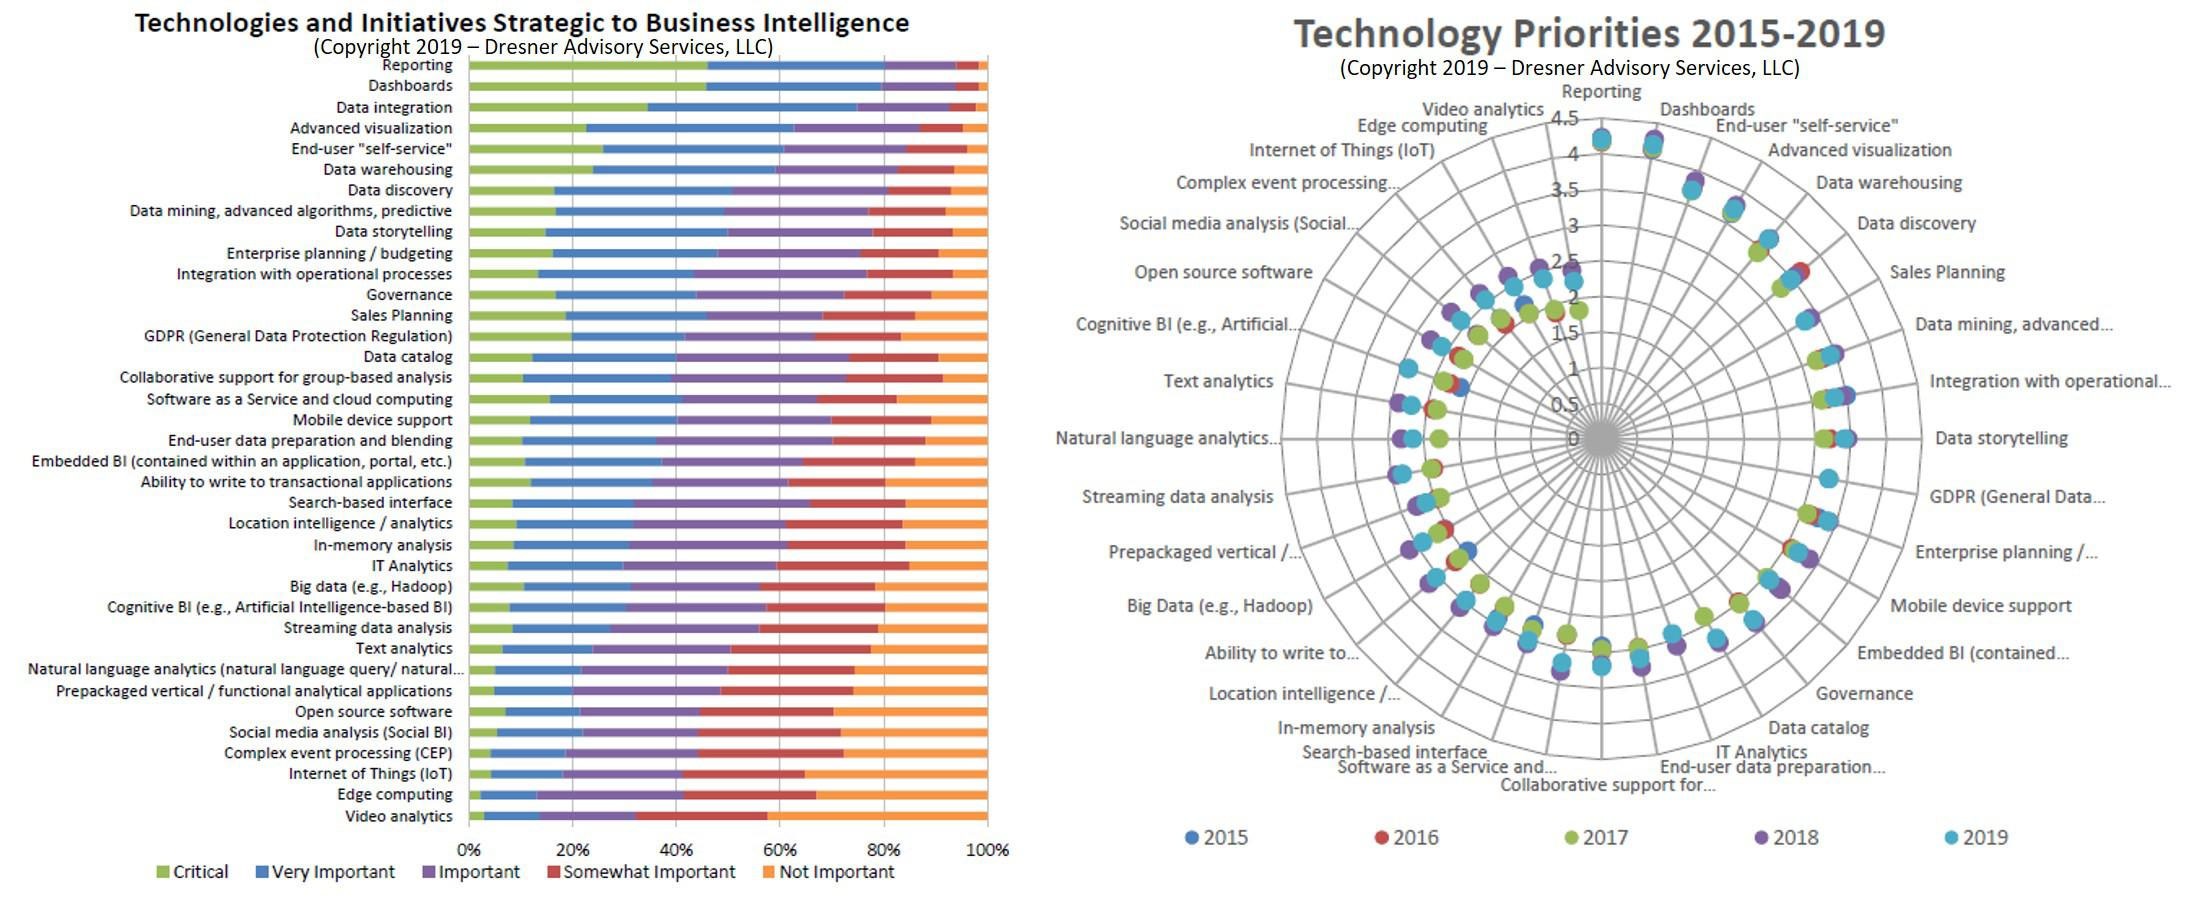 business intelligence applications include all except